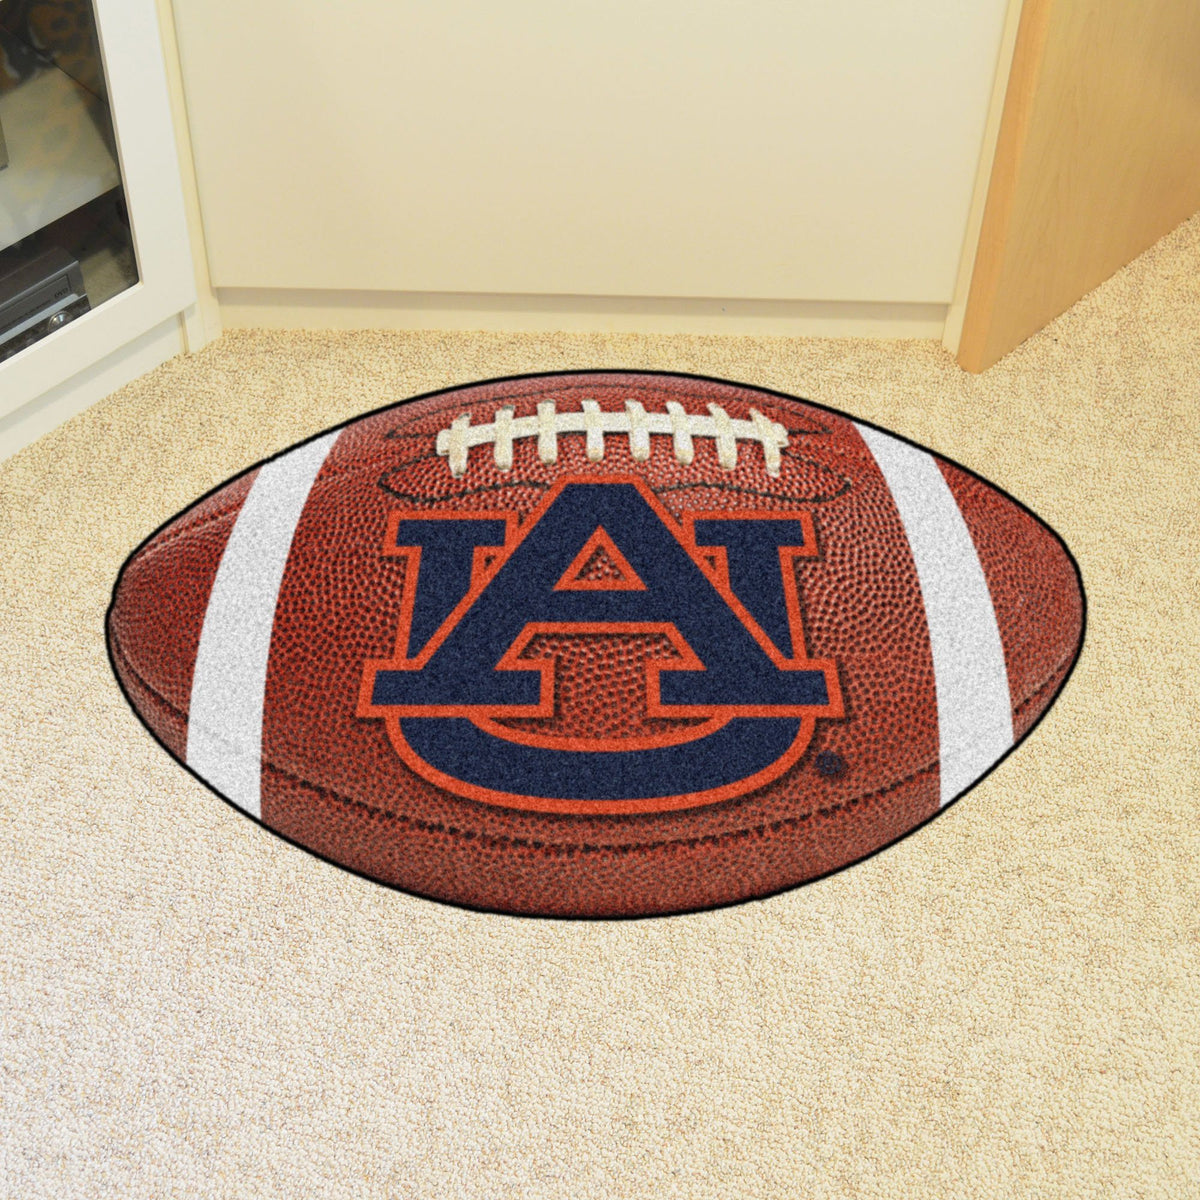 Collegiate - Football Mat: A - K Collegiate Mats, Rectangular Mats, Football Mat, Collegiate, Home Fan Mats Auburn 2